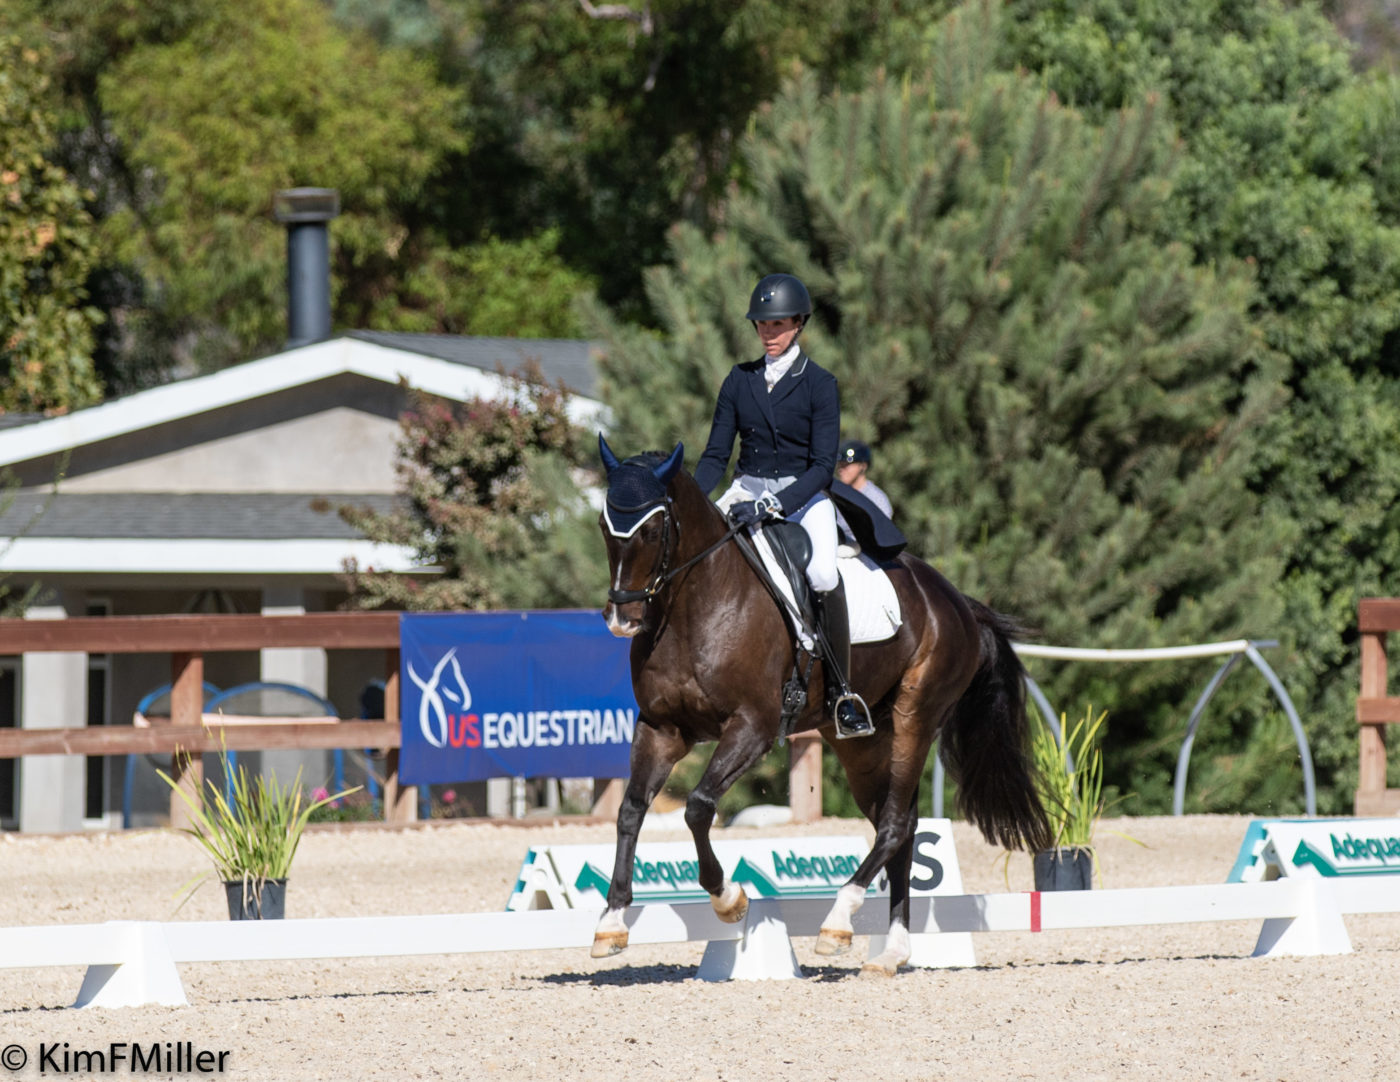 CCI3*-L - 2nd - Asia Vedder and Isi - 29.9